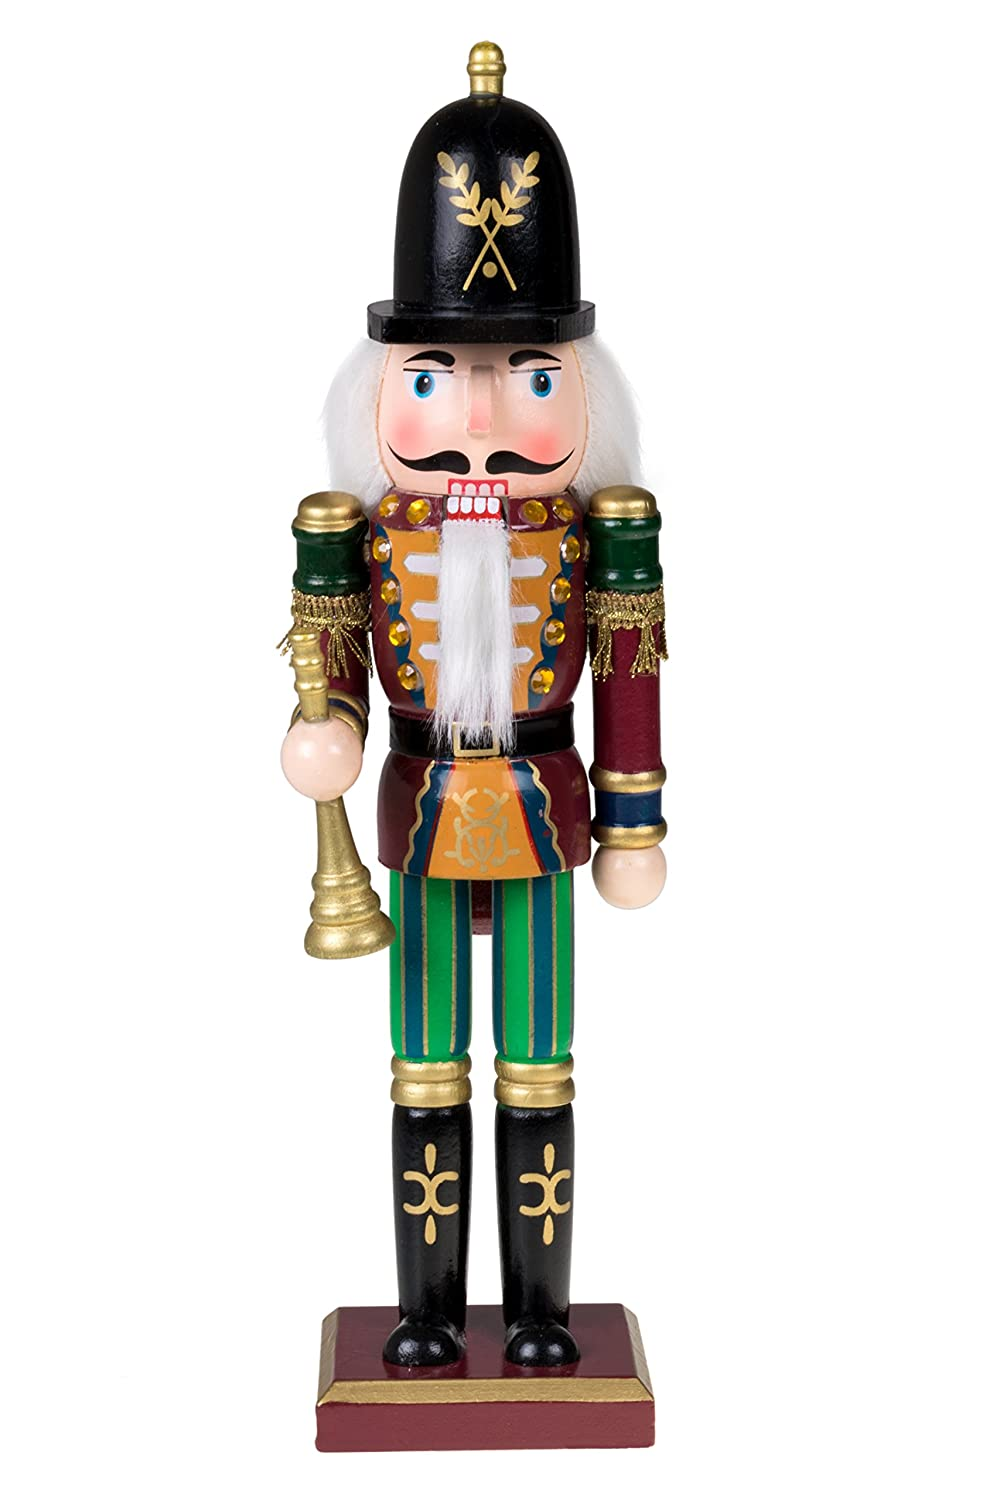 c565ceacb Clever Creations Traditional Soldier Nutcracker with Horn | Collectible  Wooden Christmas Nutcracker | Festive Holiday Decor